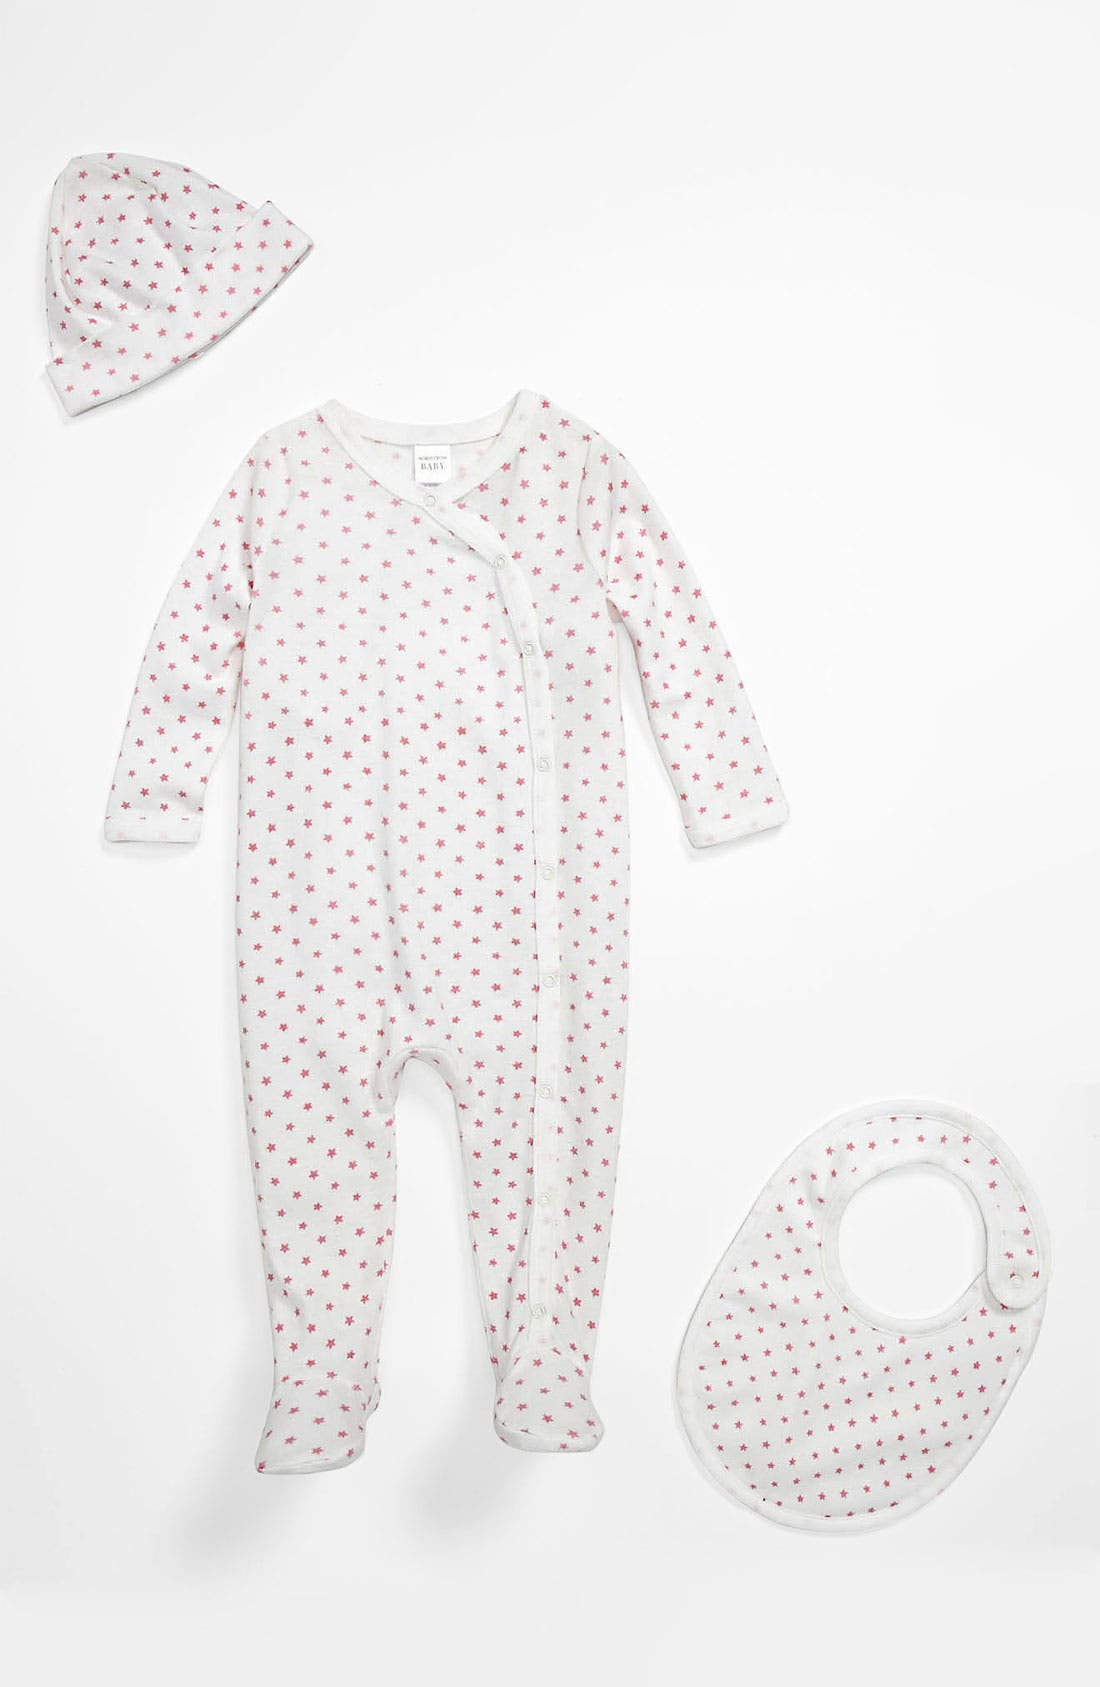 Main Image - Nordstrom Baby 'Welcome' Gift Set (Baby)